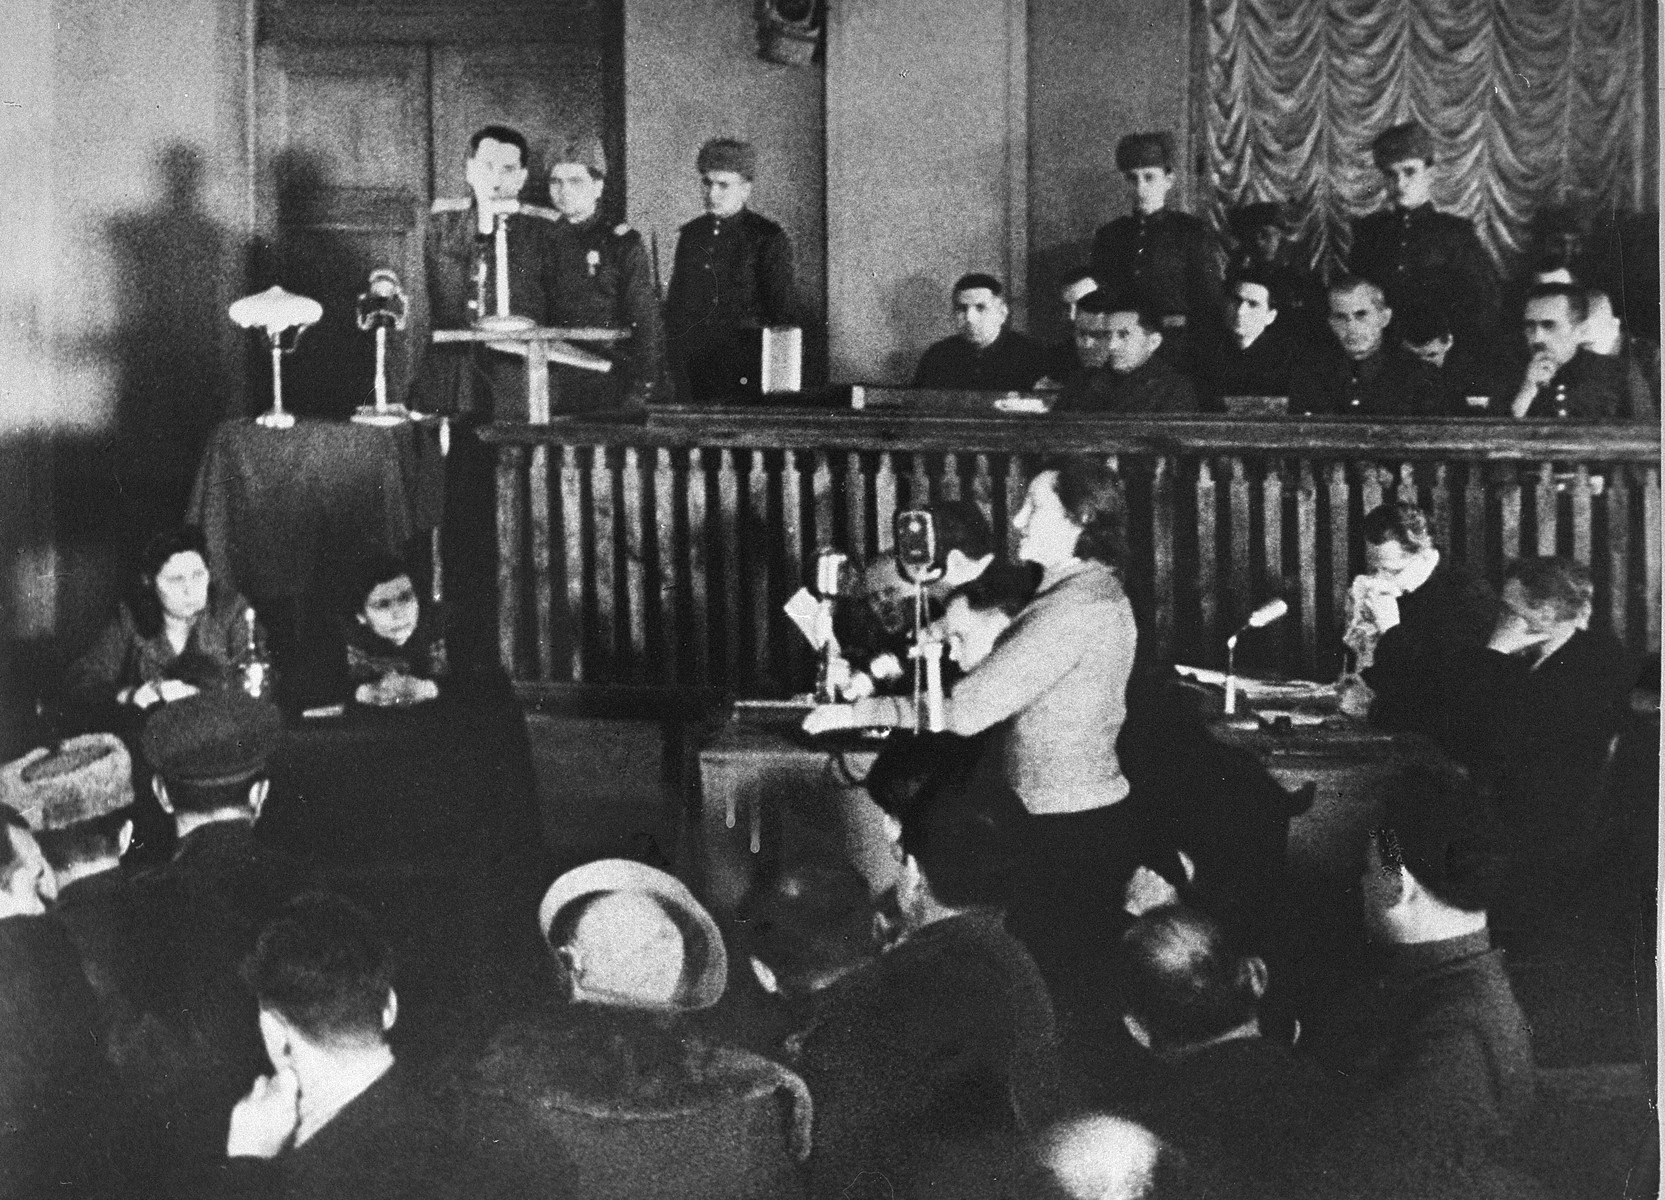 Dina Pronicheva, a Jewish survivor of the Babi Yar massacre, testifies about her experiences during a war crimes trial in Kiev. [Oversized print]